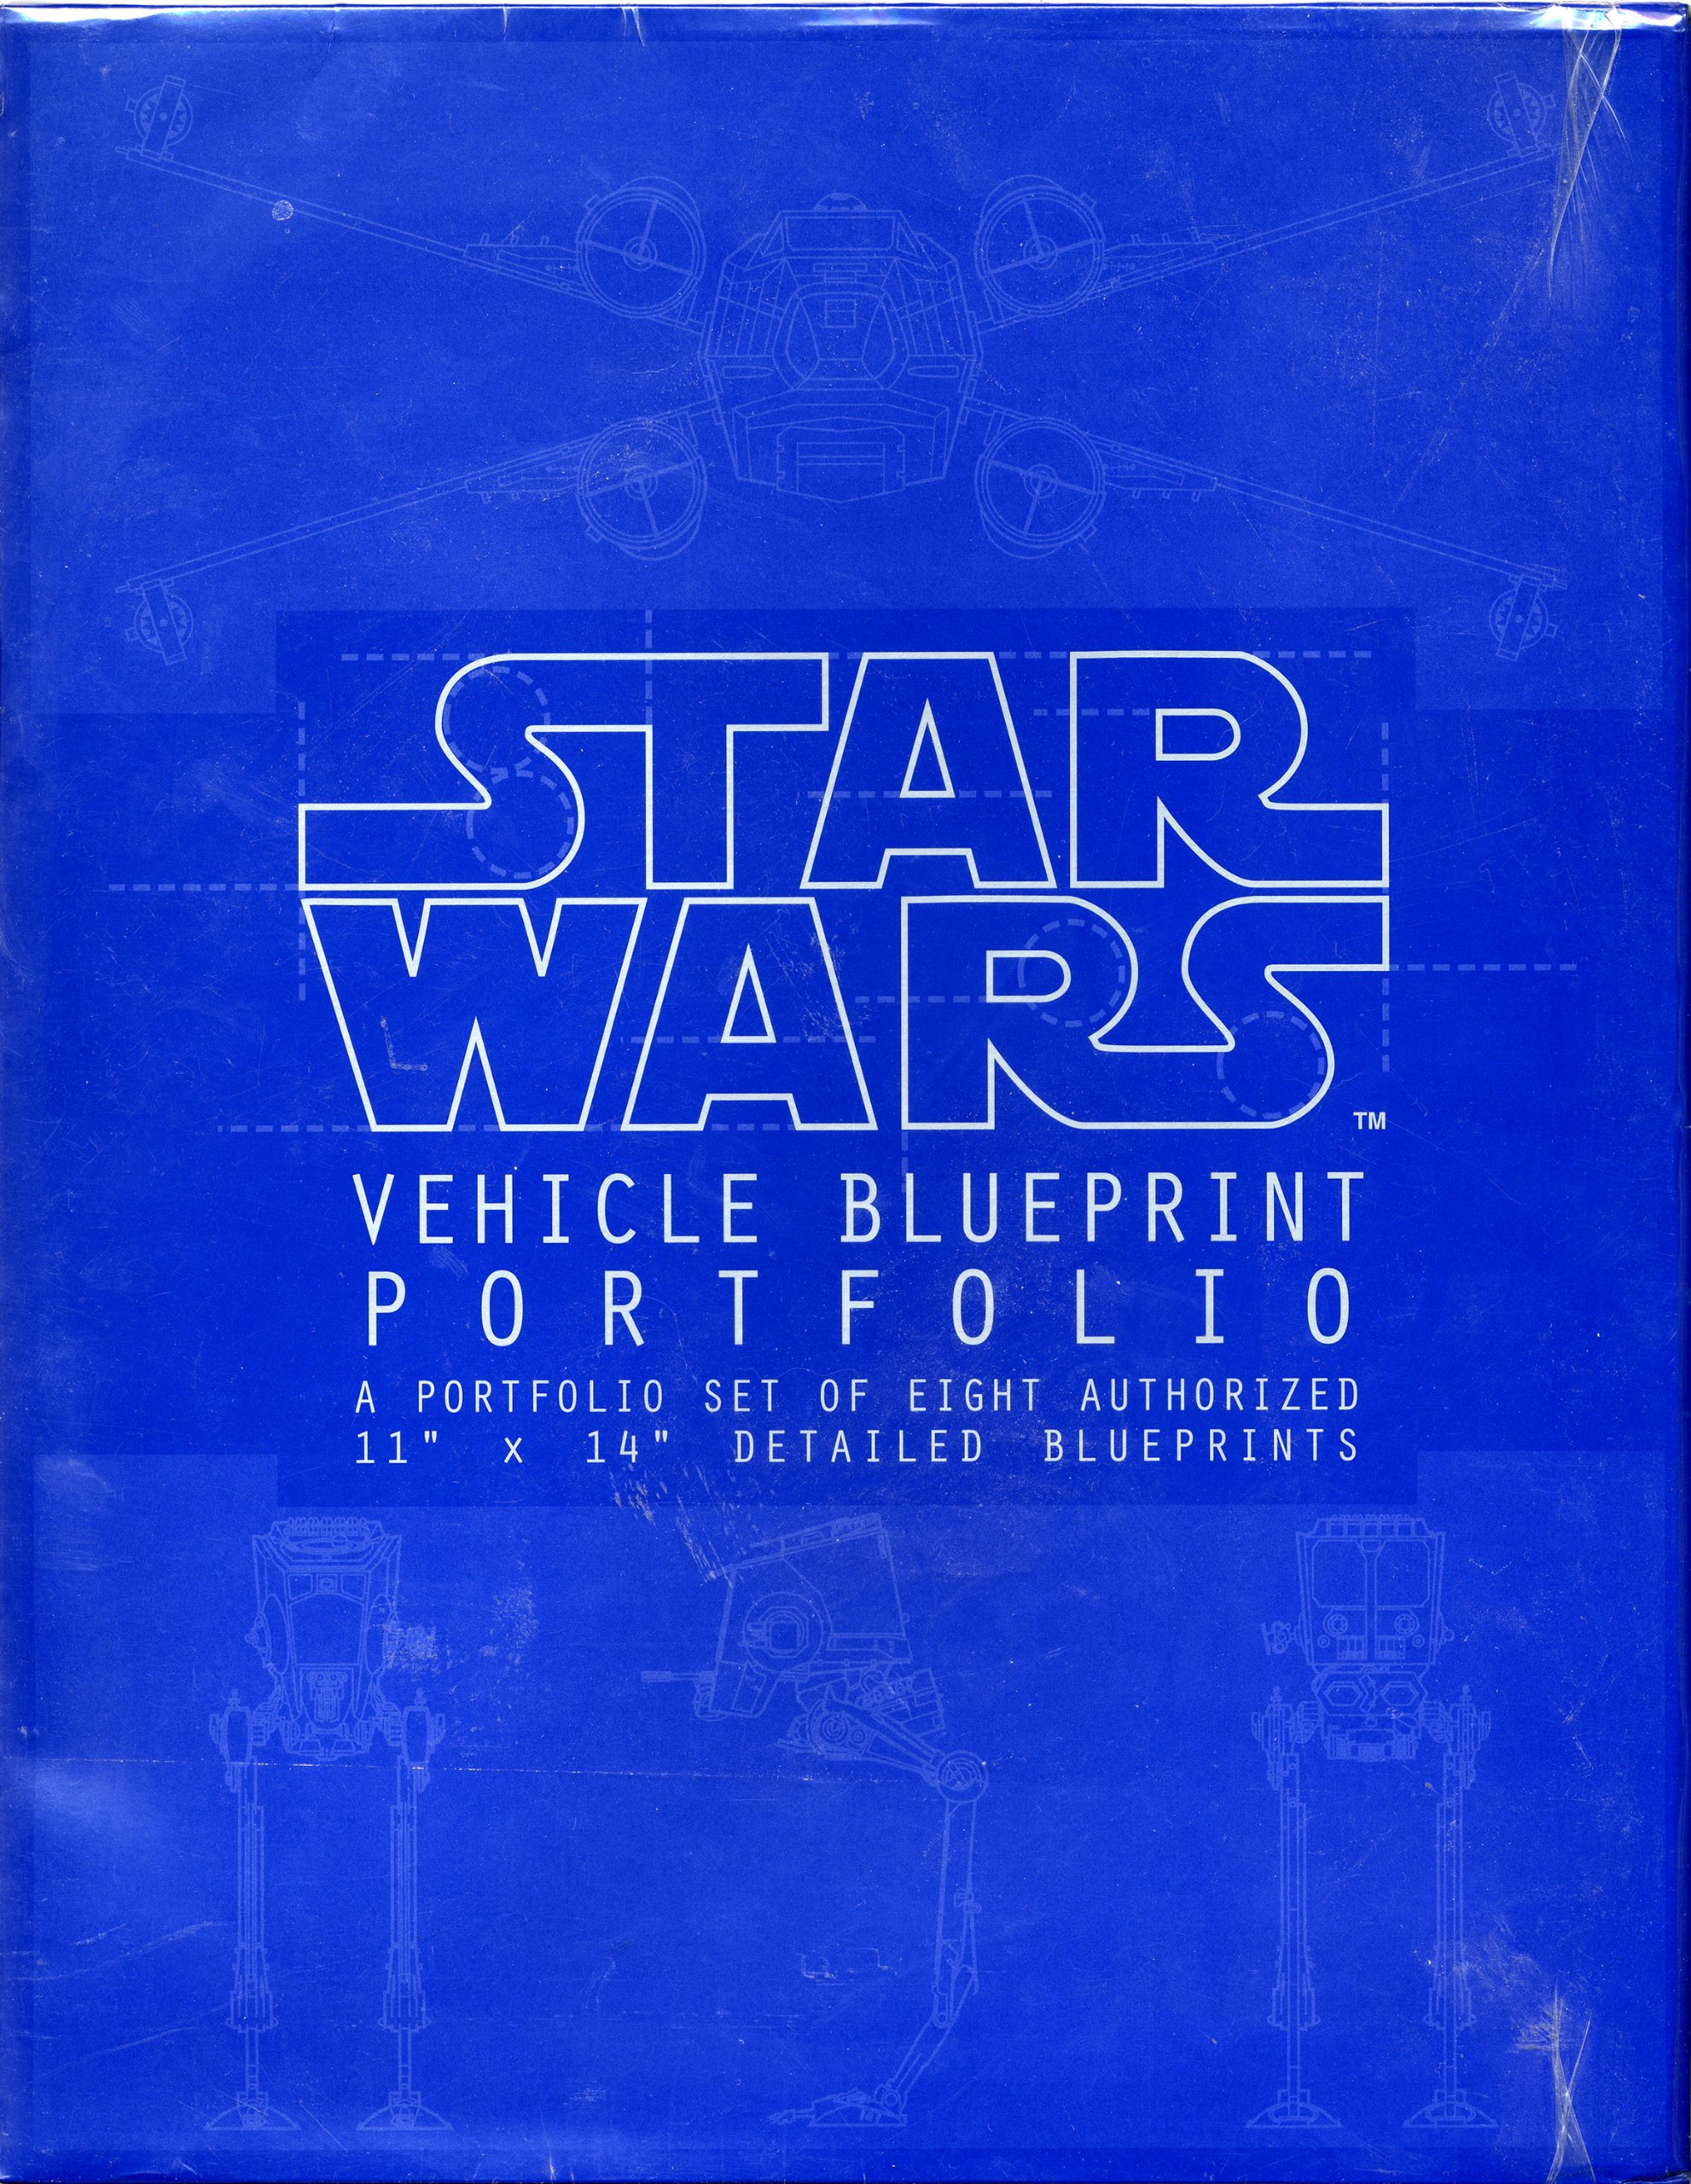 Star Wars Vehicle Blueprint Portfolio